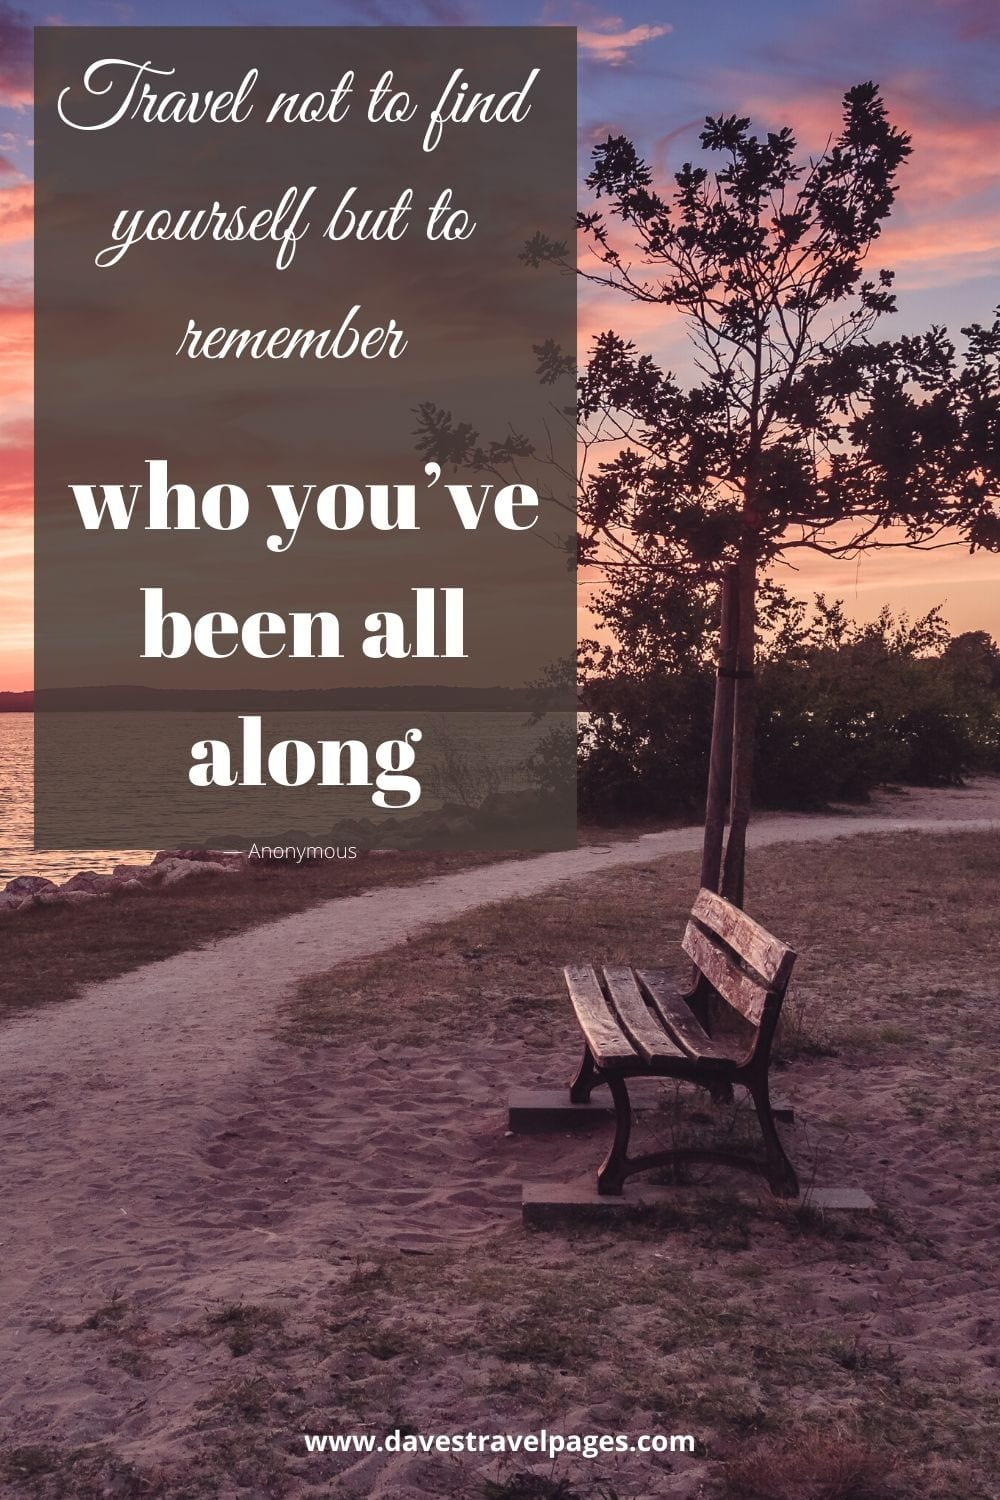 """One of the best travel quotes: """"Travel not to find yourself but to remember who you've been all along."""" — Anonymous"""